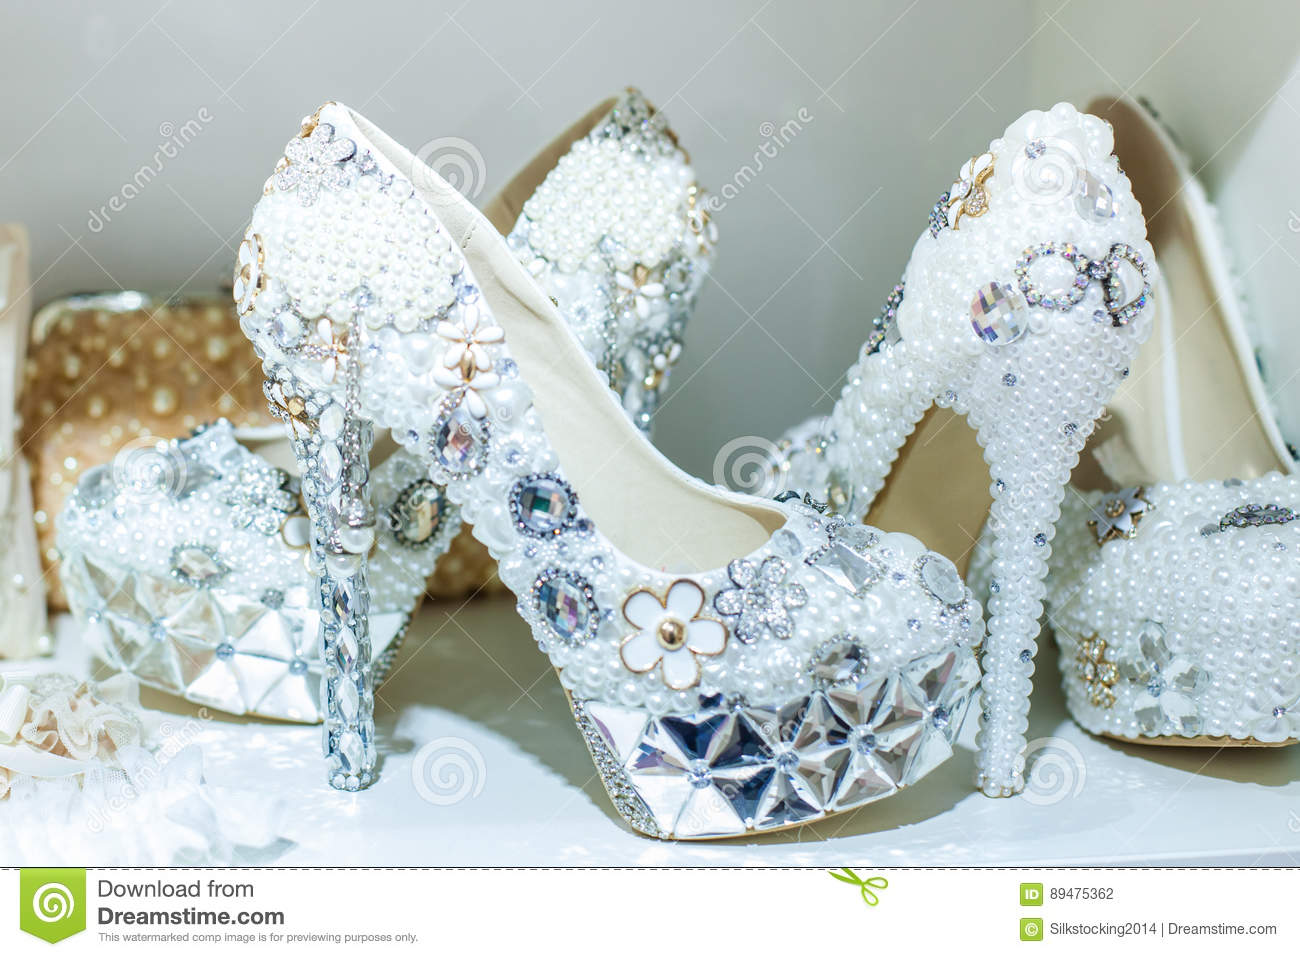 626191d3a815 Bright wedding shoes are decorated with different precious stones and beads